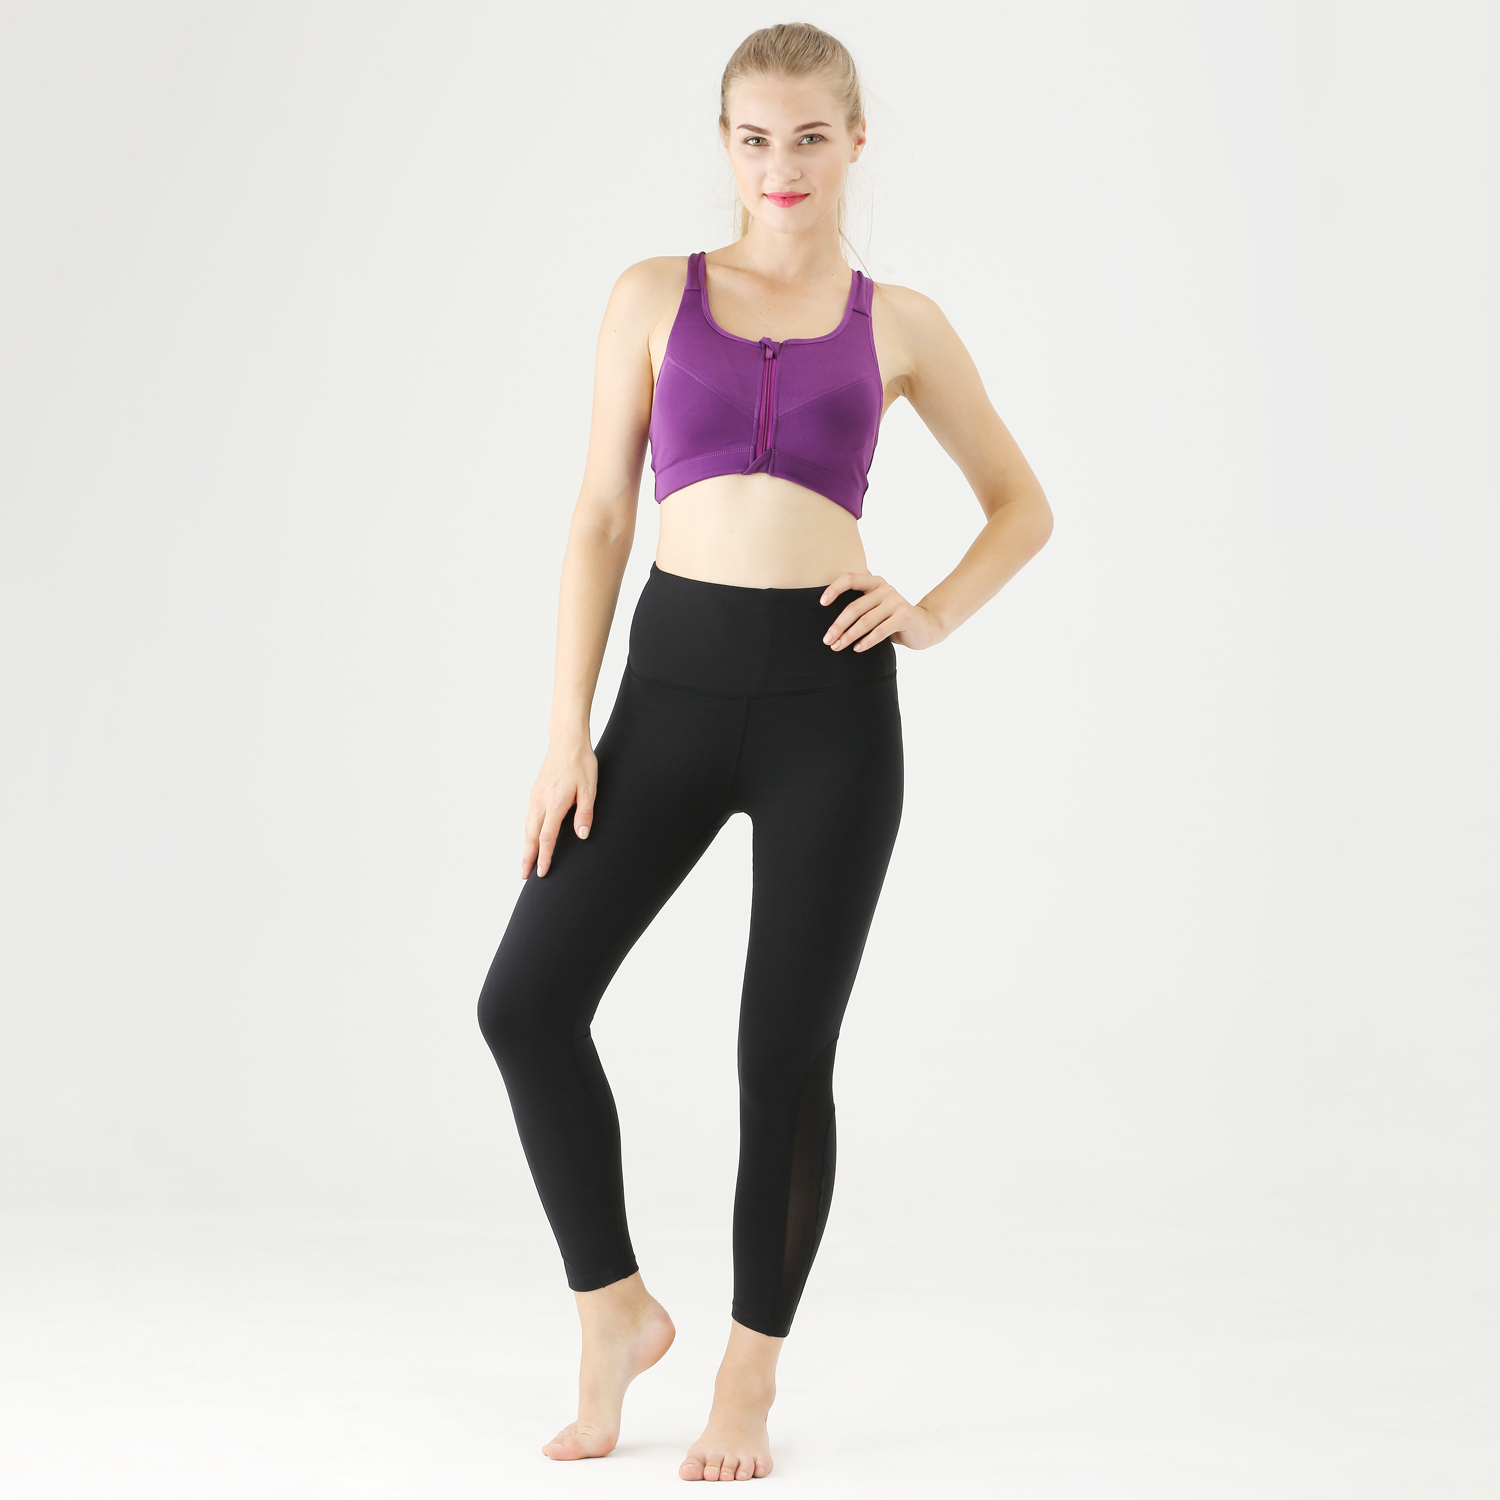 Women's Active Bottoms. Take your activewear up a notch with tights and leggings that will help you reach your fitness goals faster. We've got 7/8 length tights, highwaisted tights, cropped tights and full-length ankle tights.